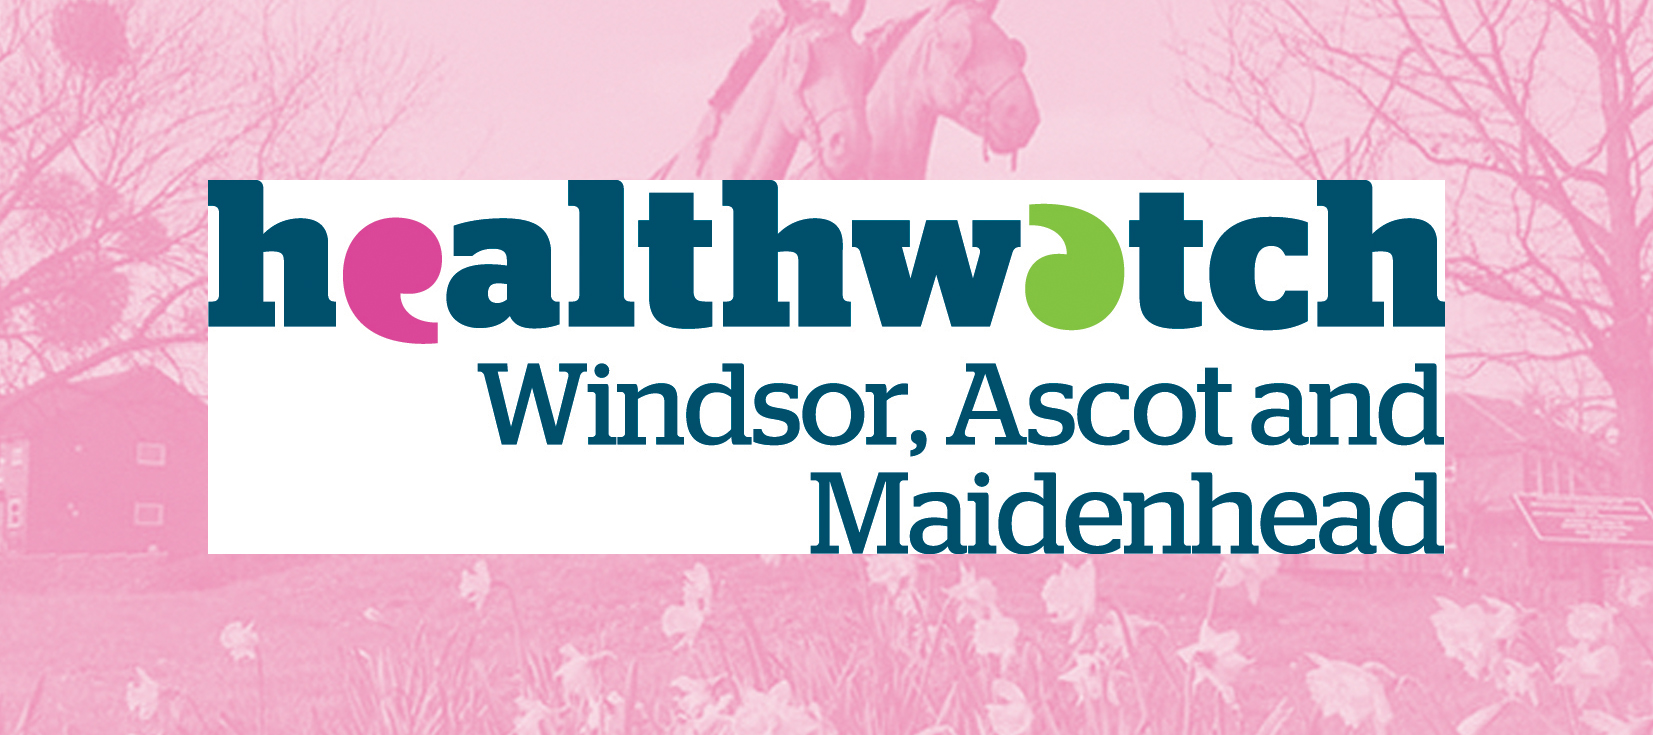 Healthwatch Windsor Ascot and Maidenhead